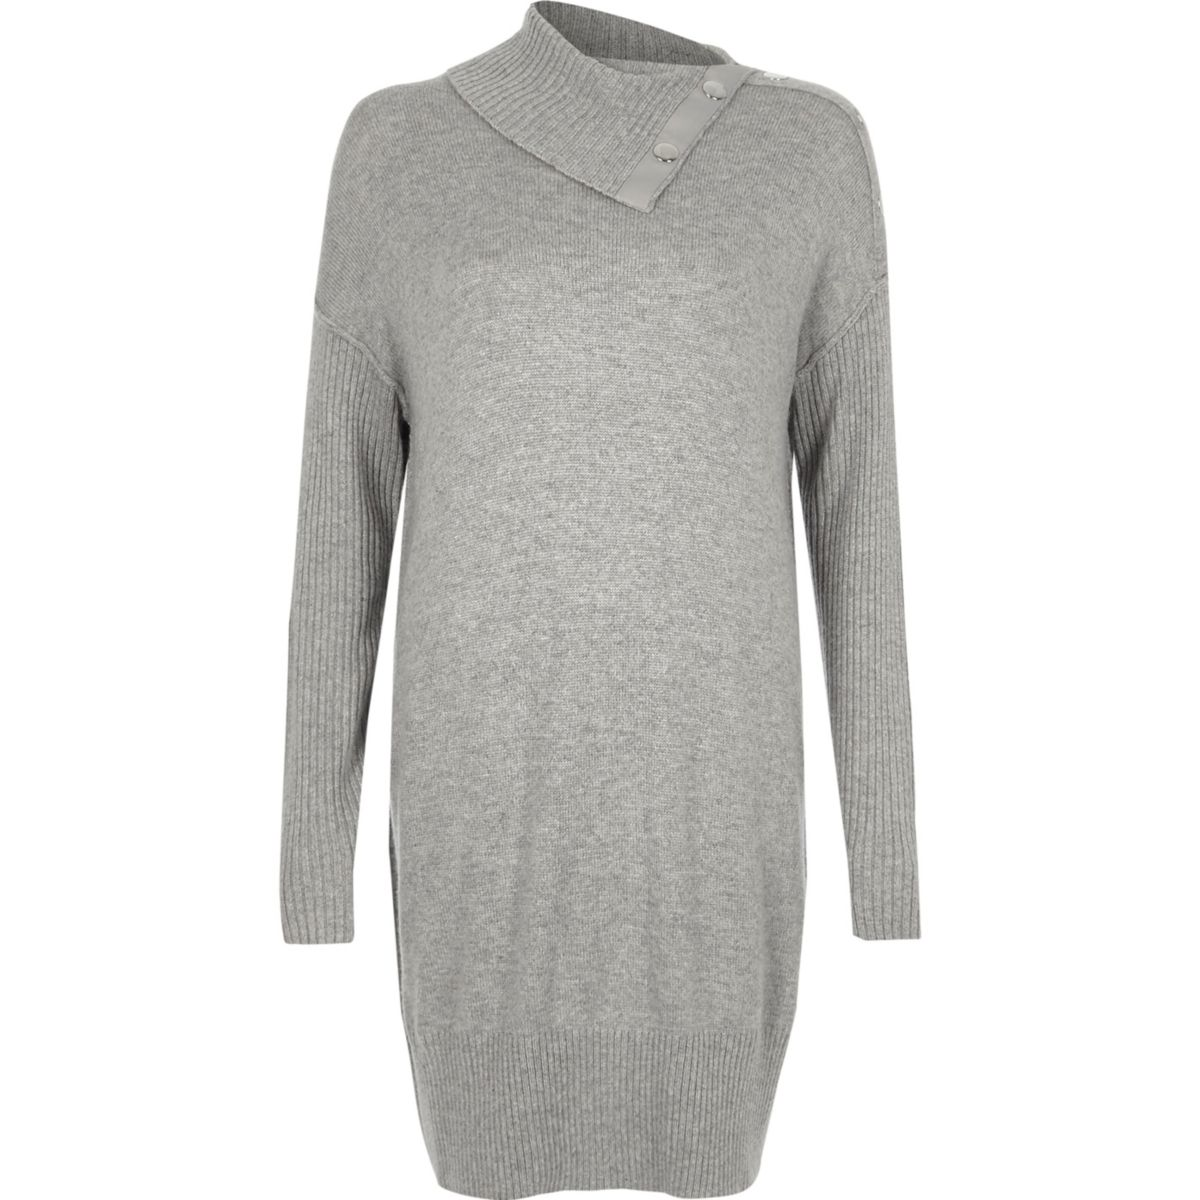 Grey popper neck rib sleeve jumper dress